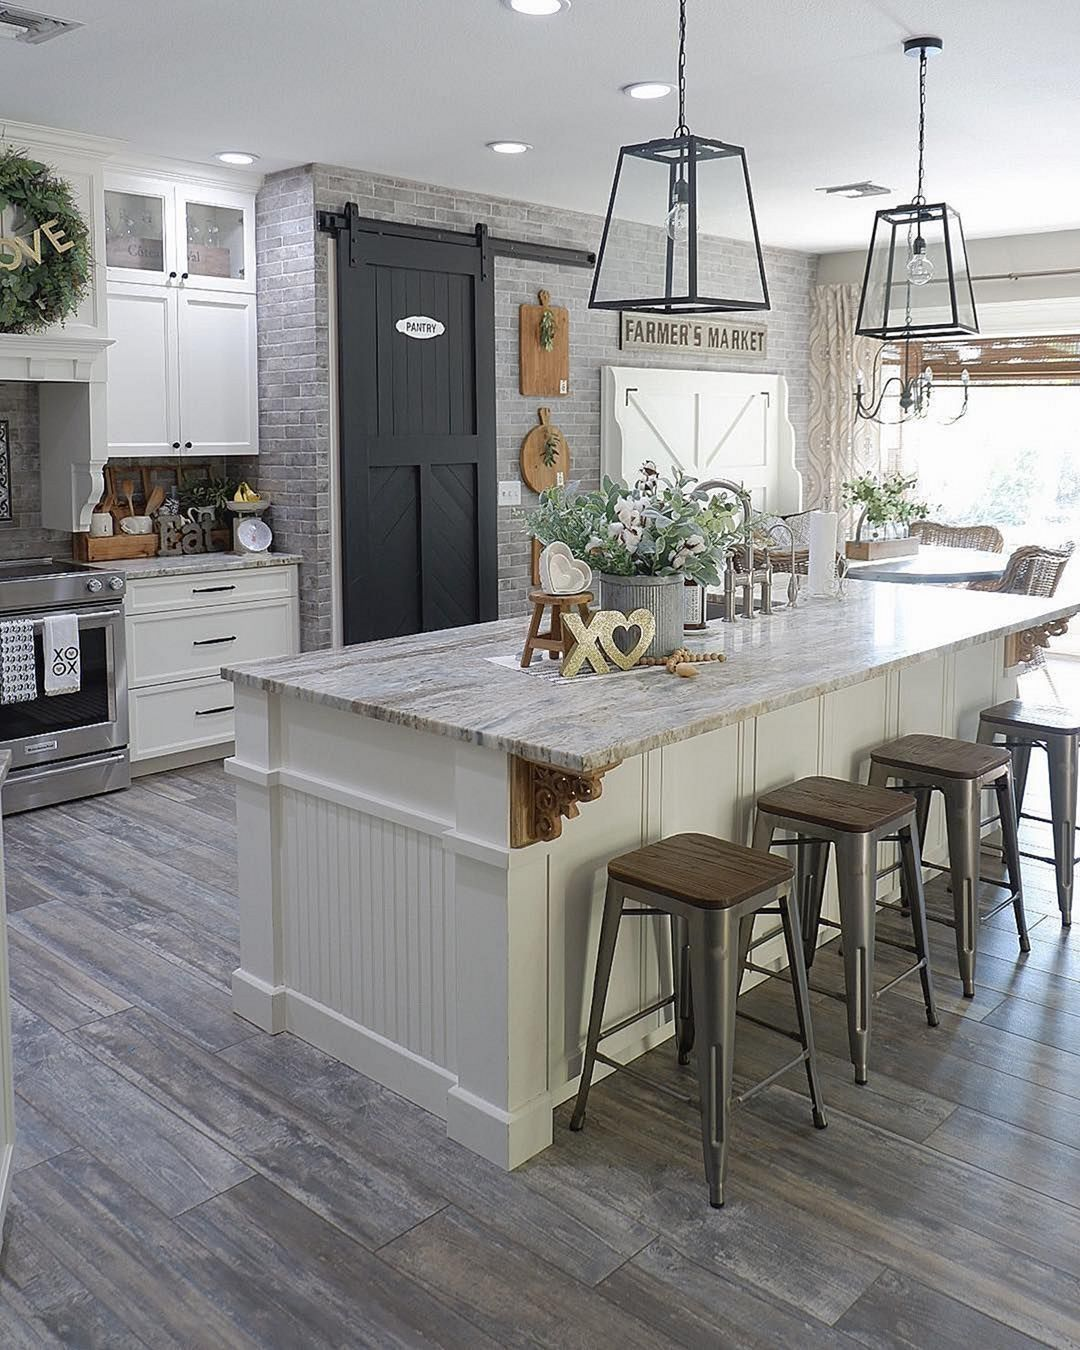 20+ Crative Farmhouse Kitchen Design Ideas For Fun Cooking To Try